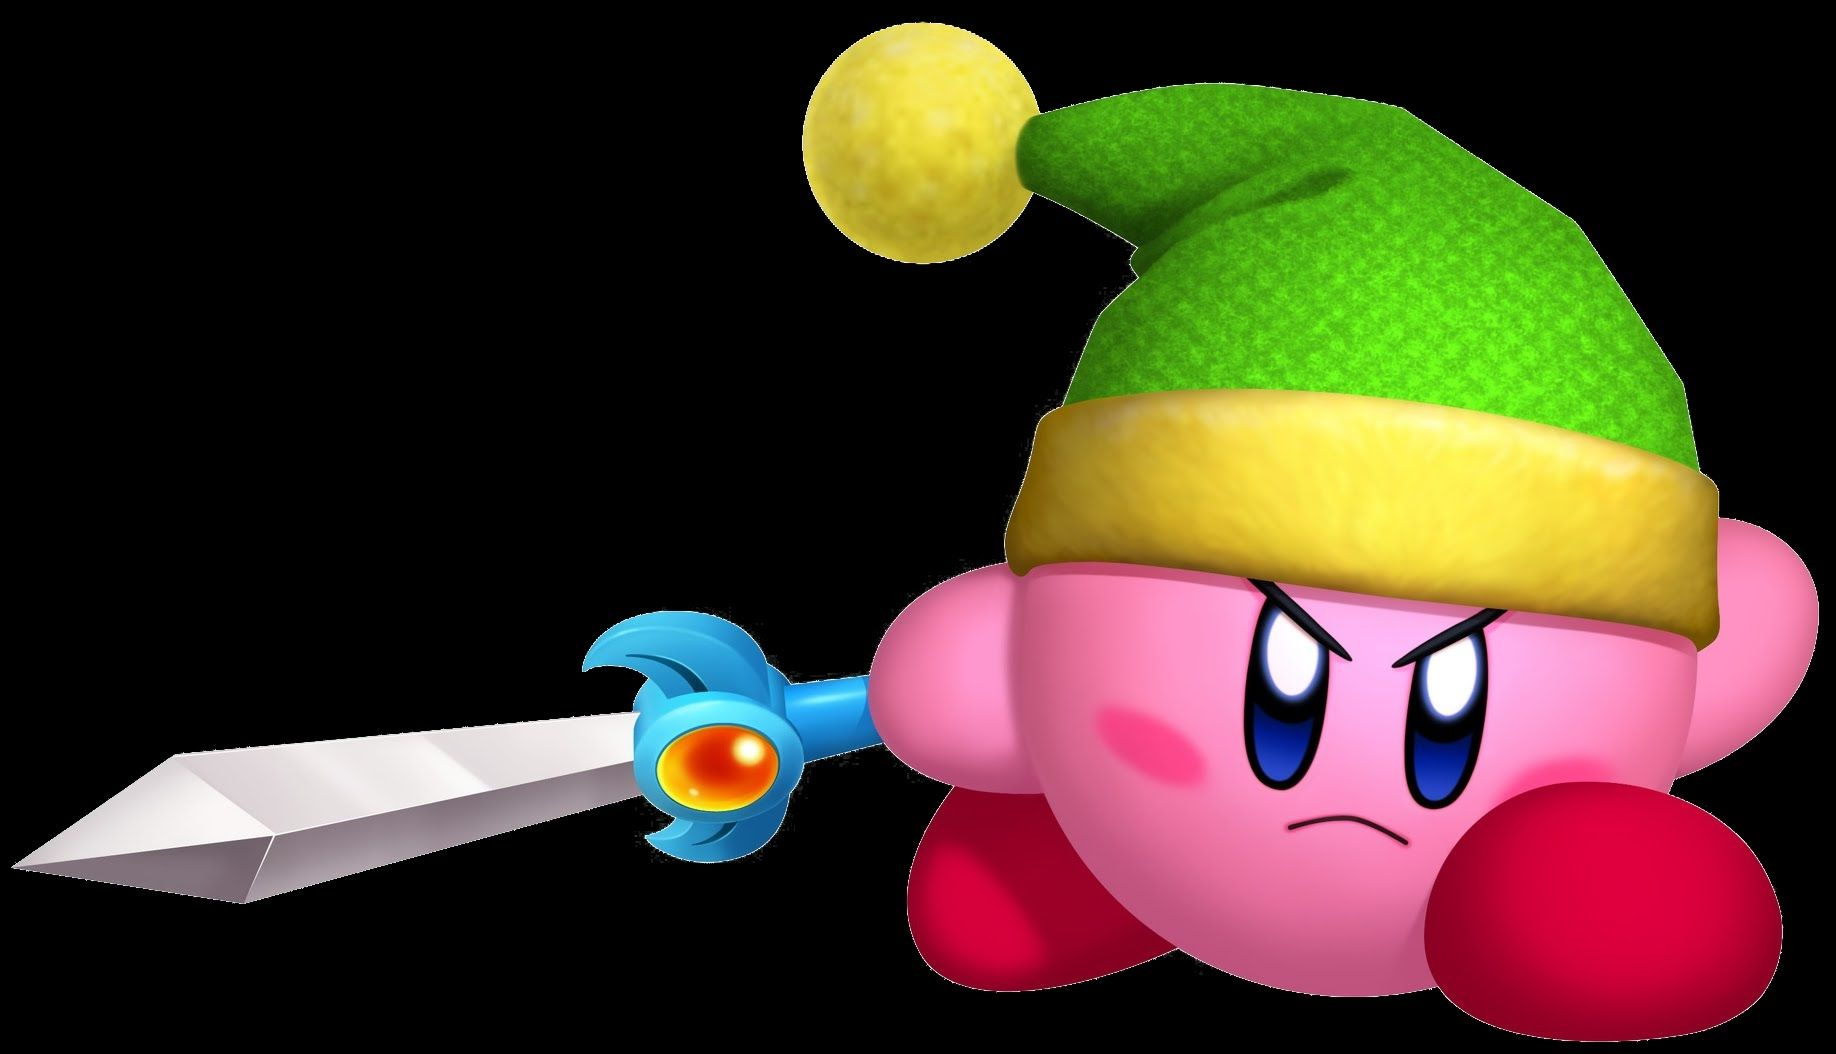 Pin by SepticKirbyplier on Kirby Right Back at Ya Concept